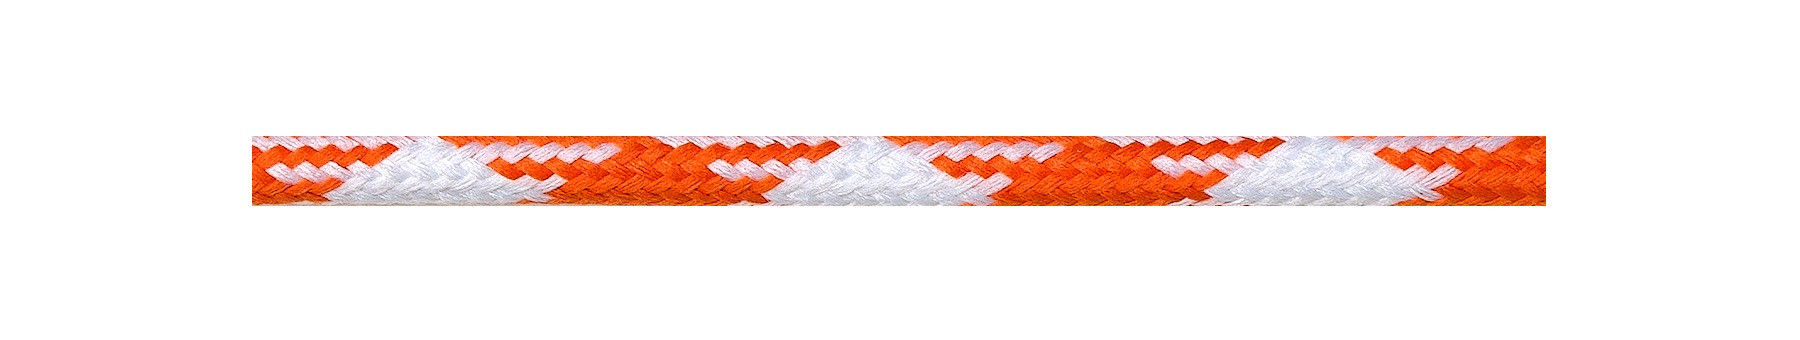 Textile Cable White-Orange-Orange